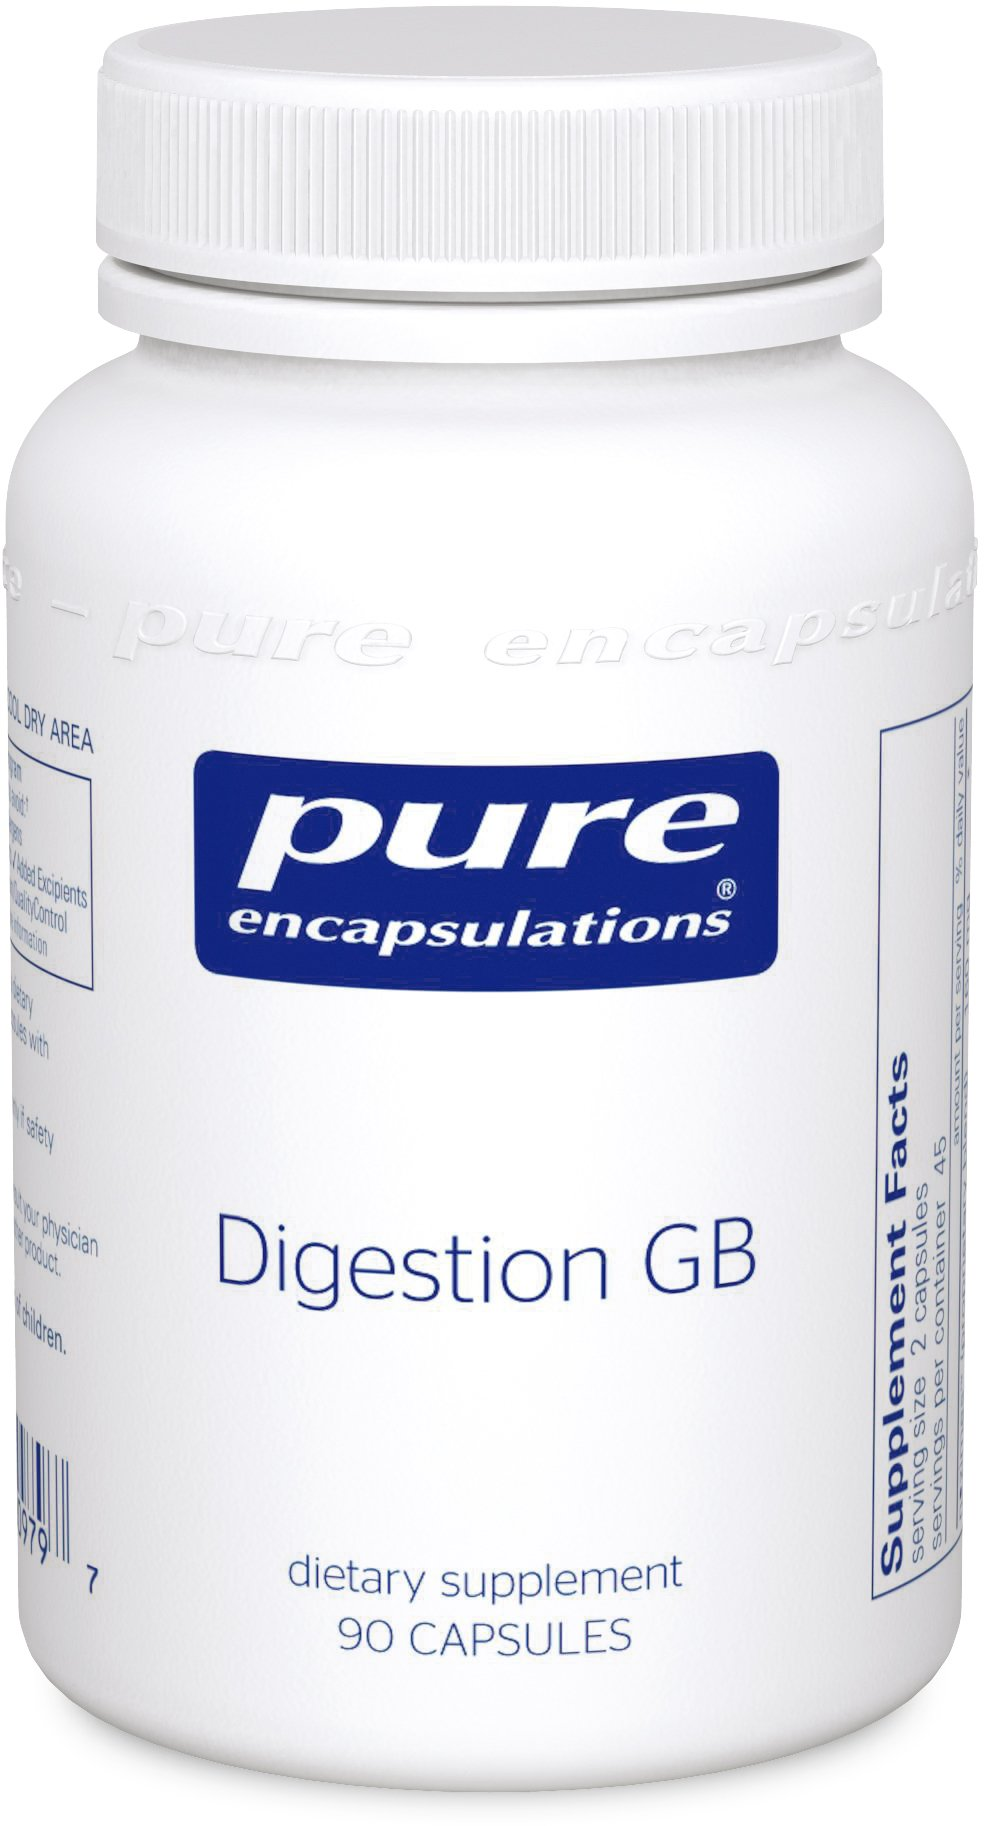 Pure Encapsulations - Digestion GB - Digestive Enzyme Formula with Extra Support for Gall Bladder Function and Fat Digestion* - 90 Capsules by Pure Encapsulations